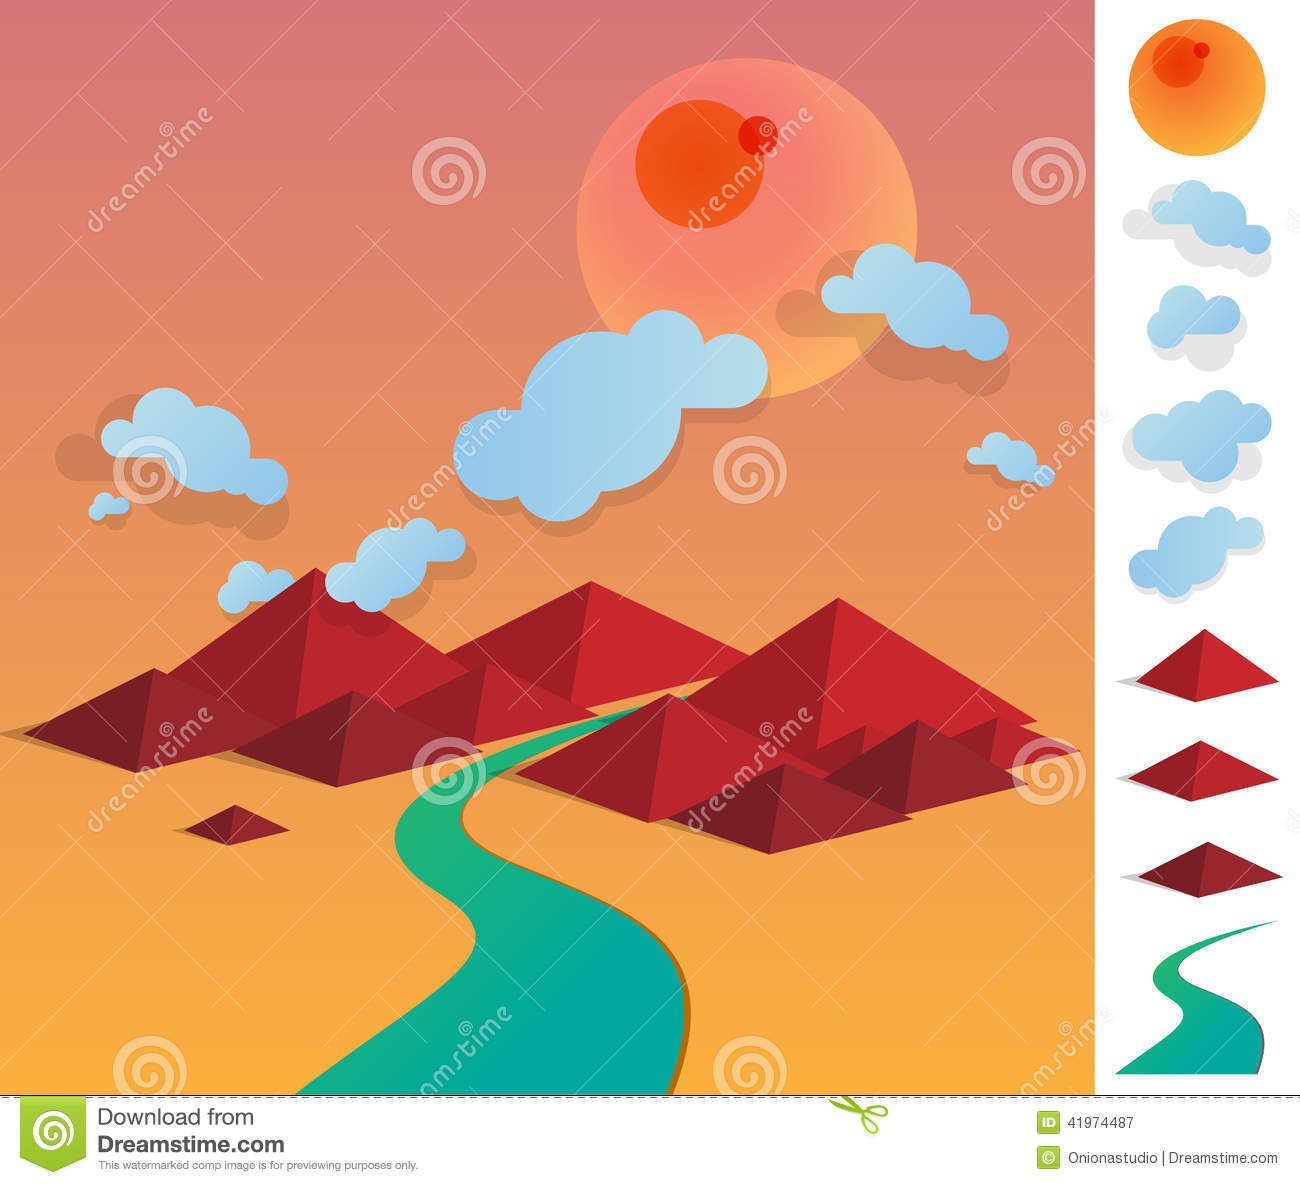 Illustration Of Geometric Landscape With River Between